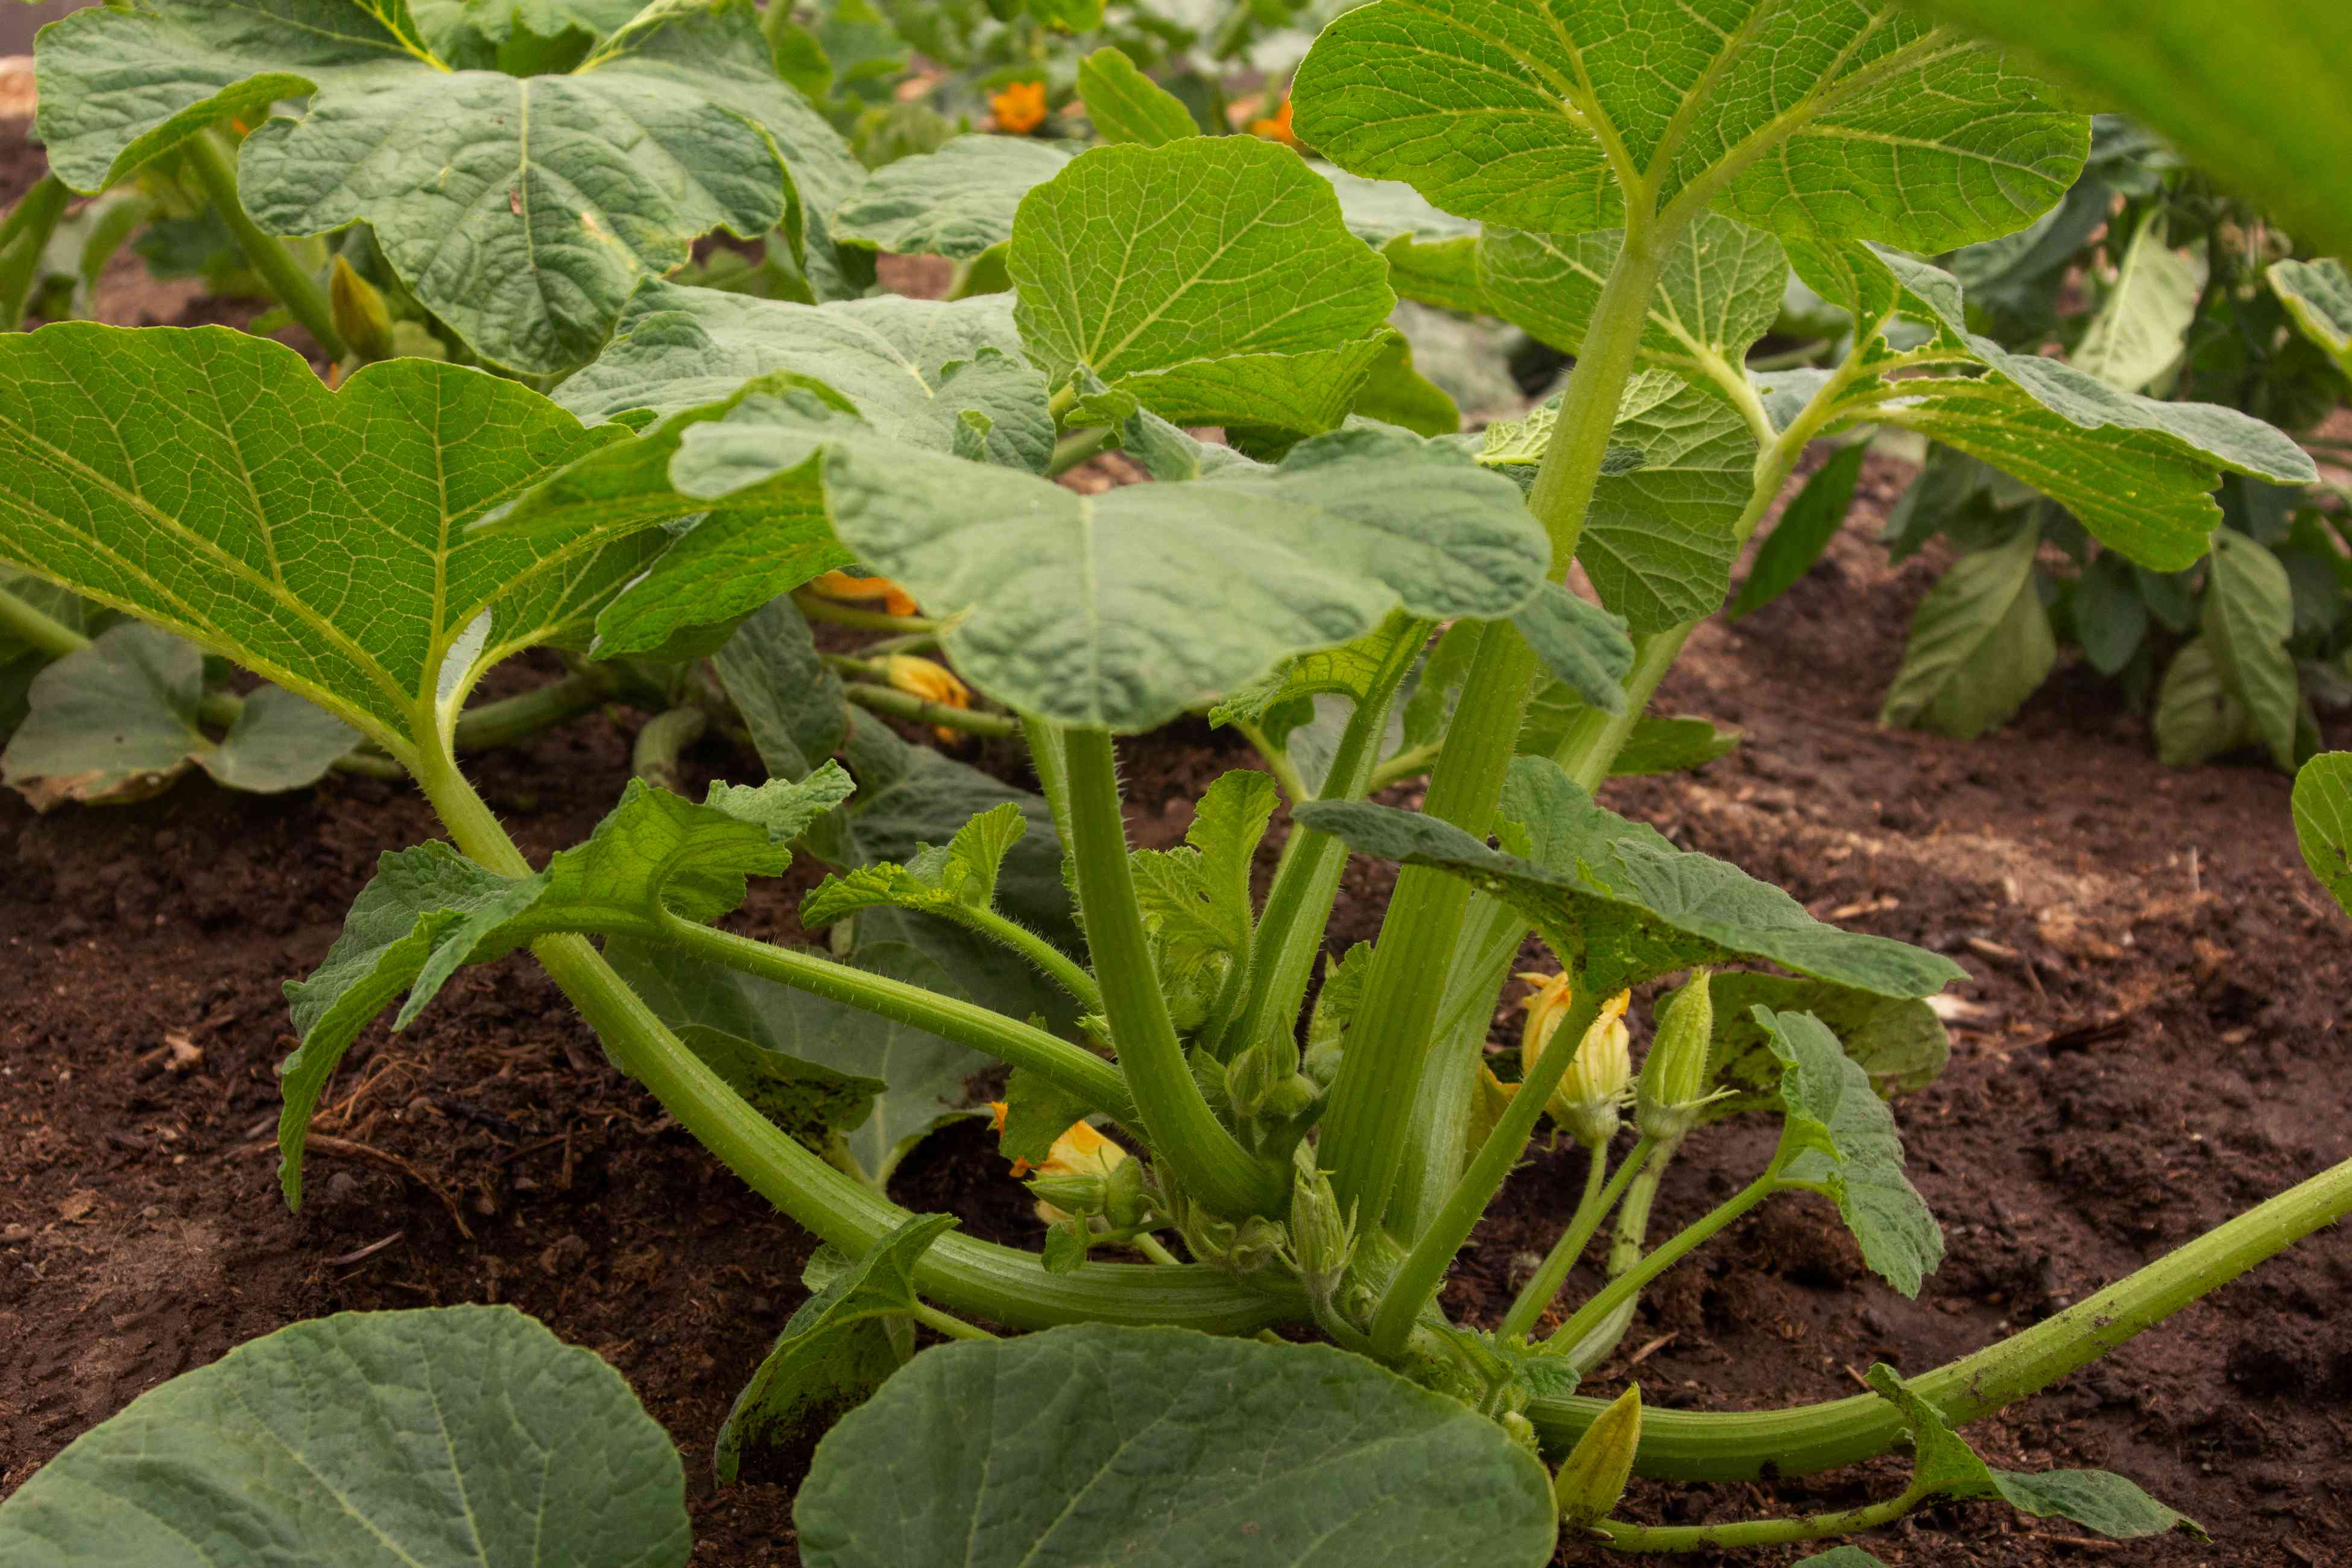 Patty pan squash plant with large leaves on thick stems